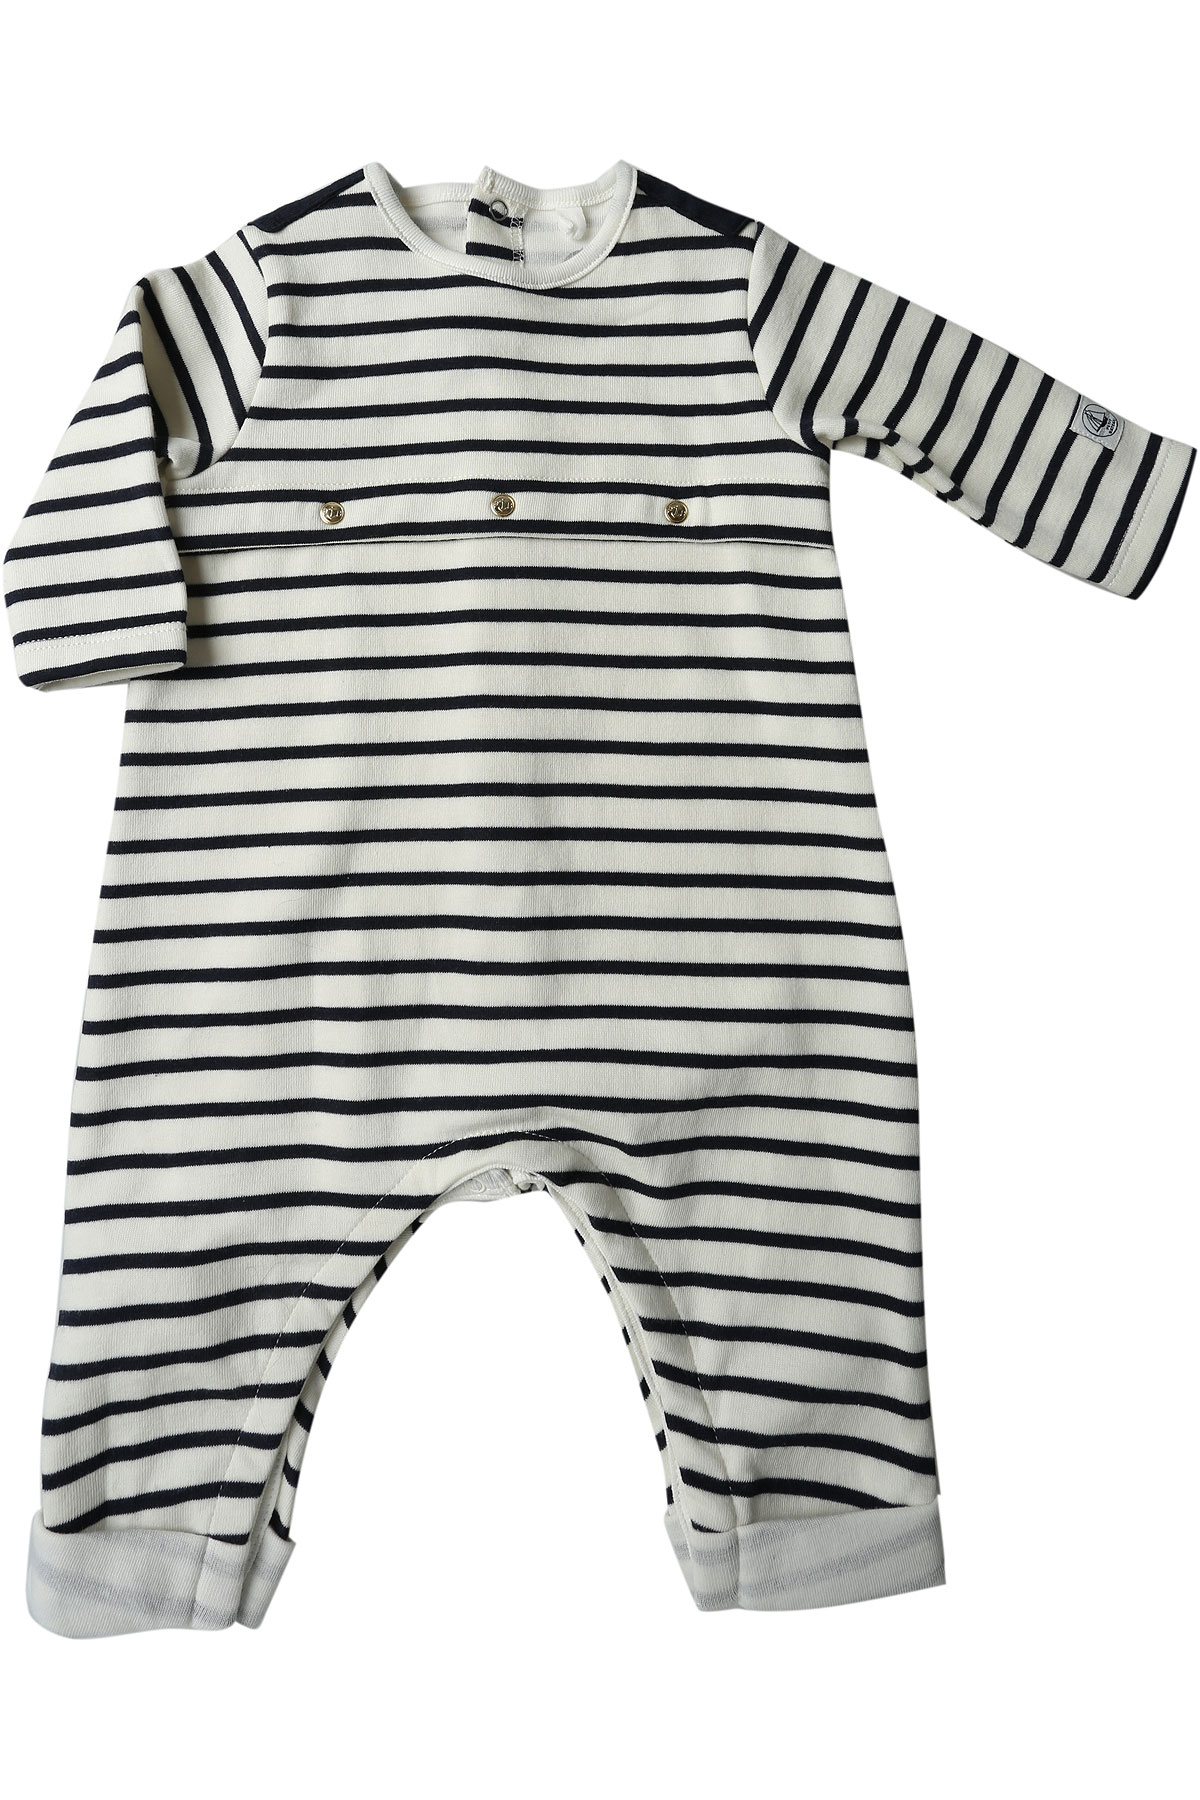 Petit Bateau Baby Bodysuits & Onesies for Boys, White, Cotton, 2017, 3M 6M USA-447879